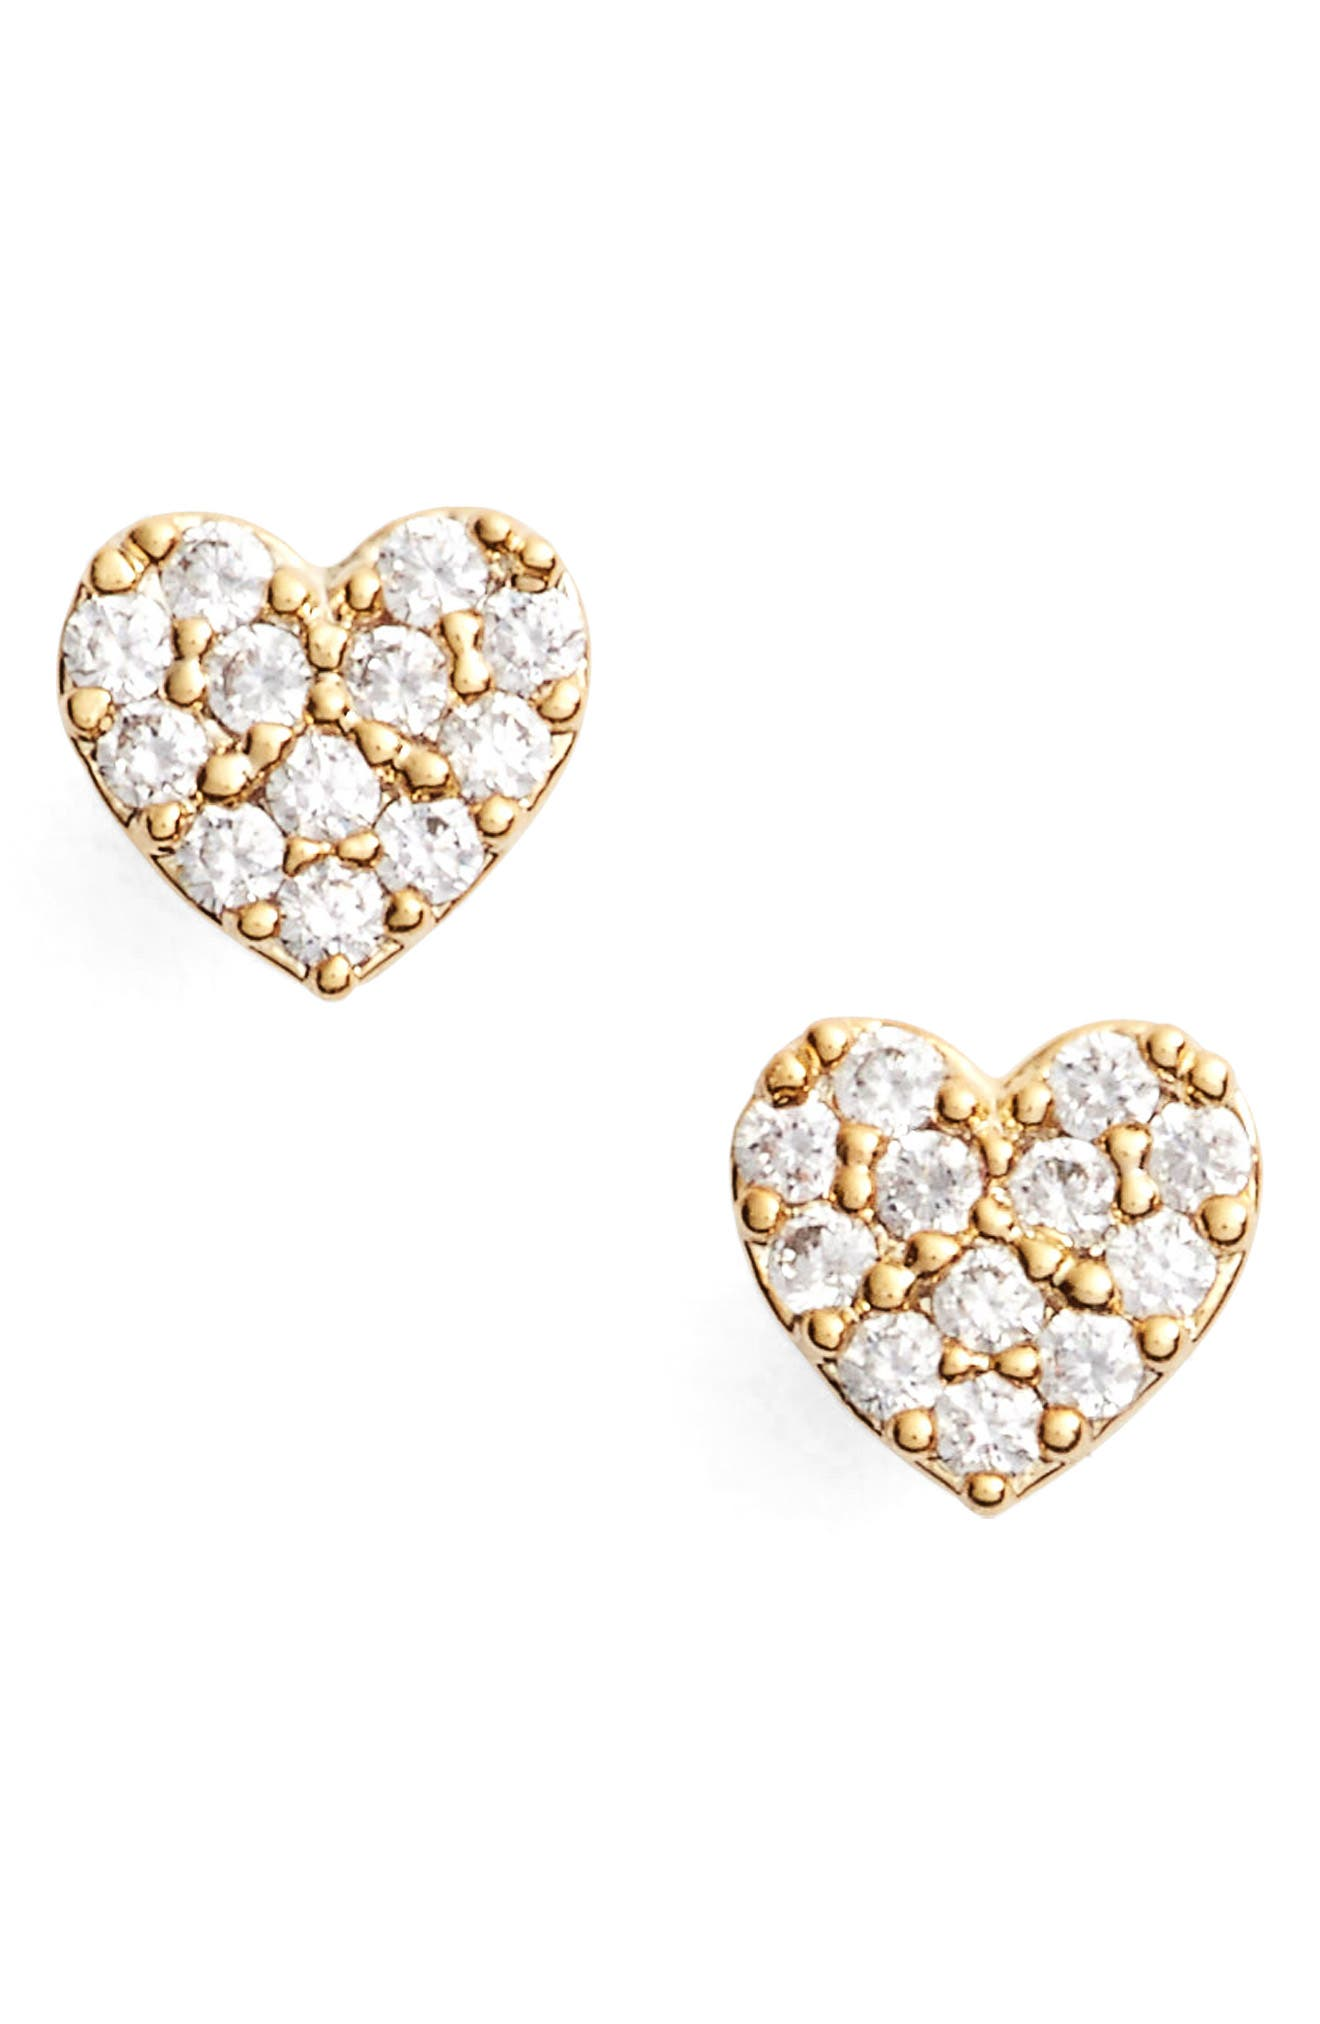 ESTELLA BARTLETT Shine Bright Heart Stud Earrings in Gold